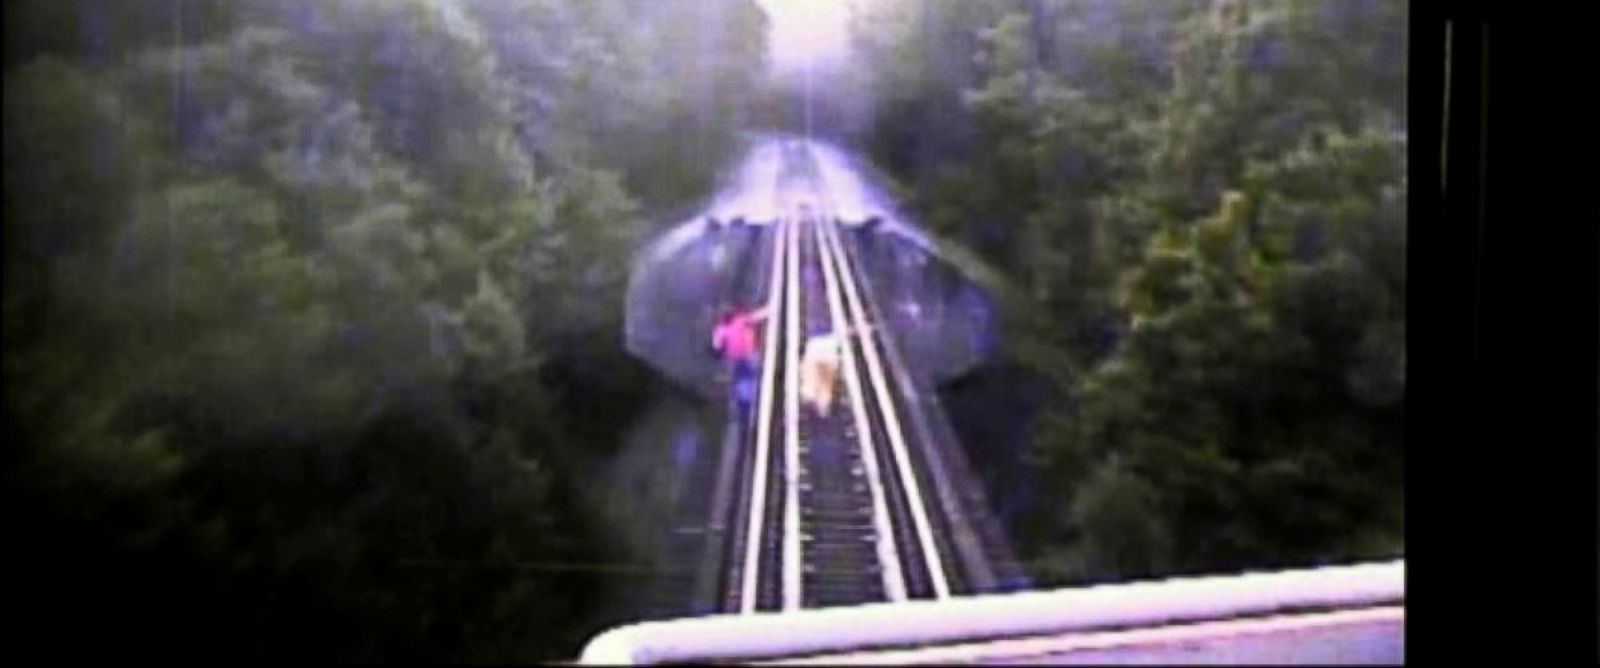 PHOTO: A camera mounted on the front of the train captures the moments when two girls duck under the train, letting it roll over them.